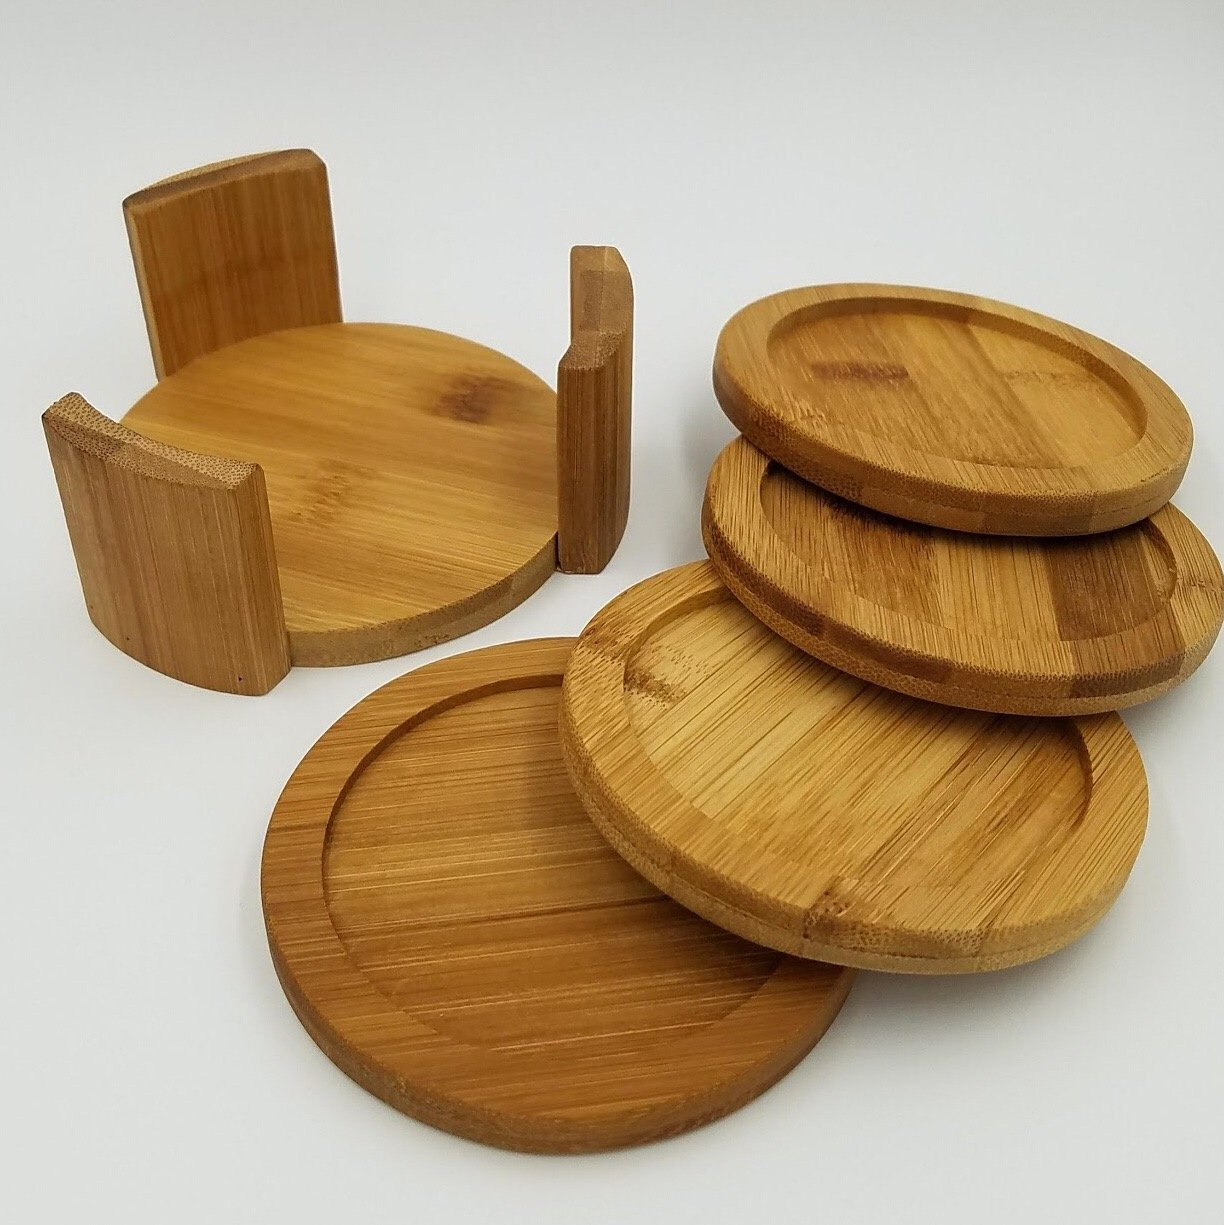 Coaster Set with Holder | Bamboo Wood | Includes 4 Round Coasters and one Holder | Use for Drinks, Beverages, Beer, and Coffee! | Barware Kitchen | Housewarming Idea